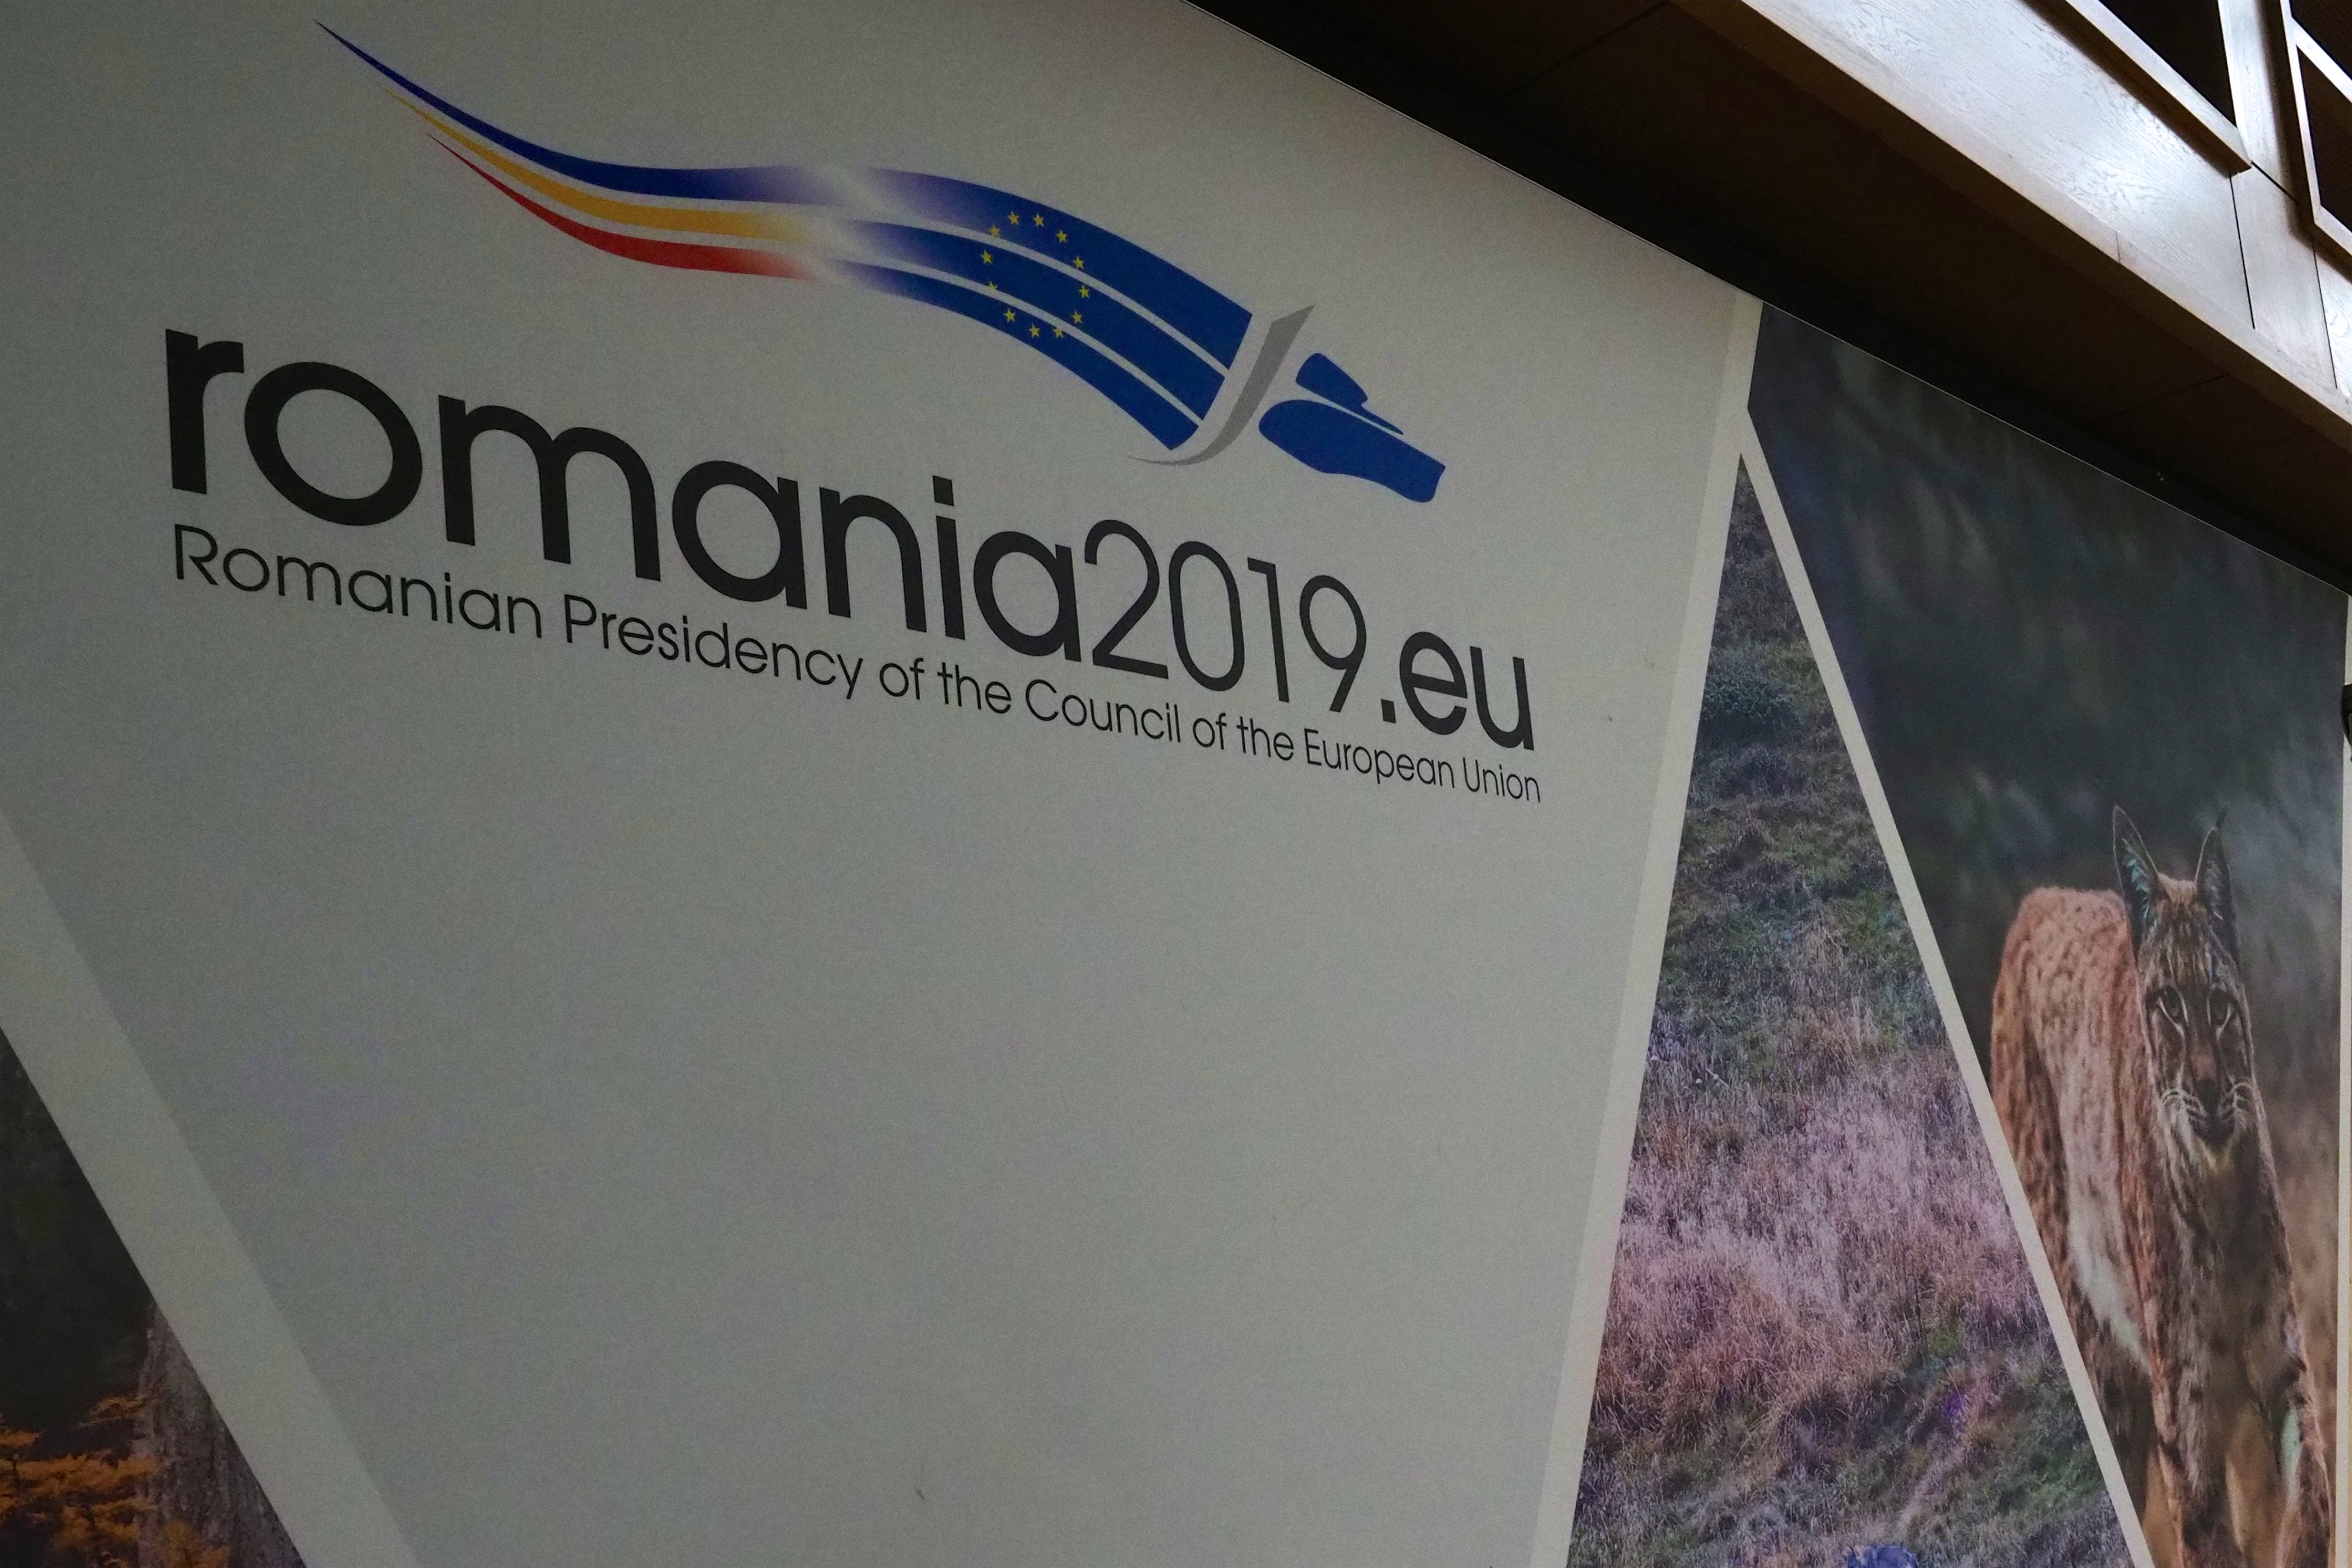 2019 Romanian EU Presidency decorations